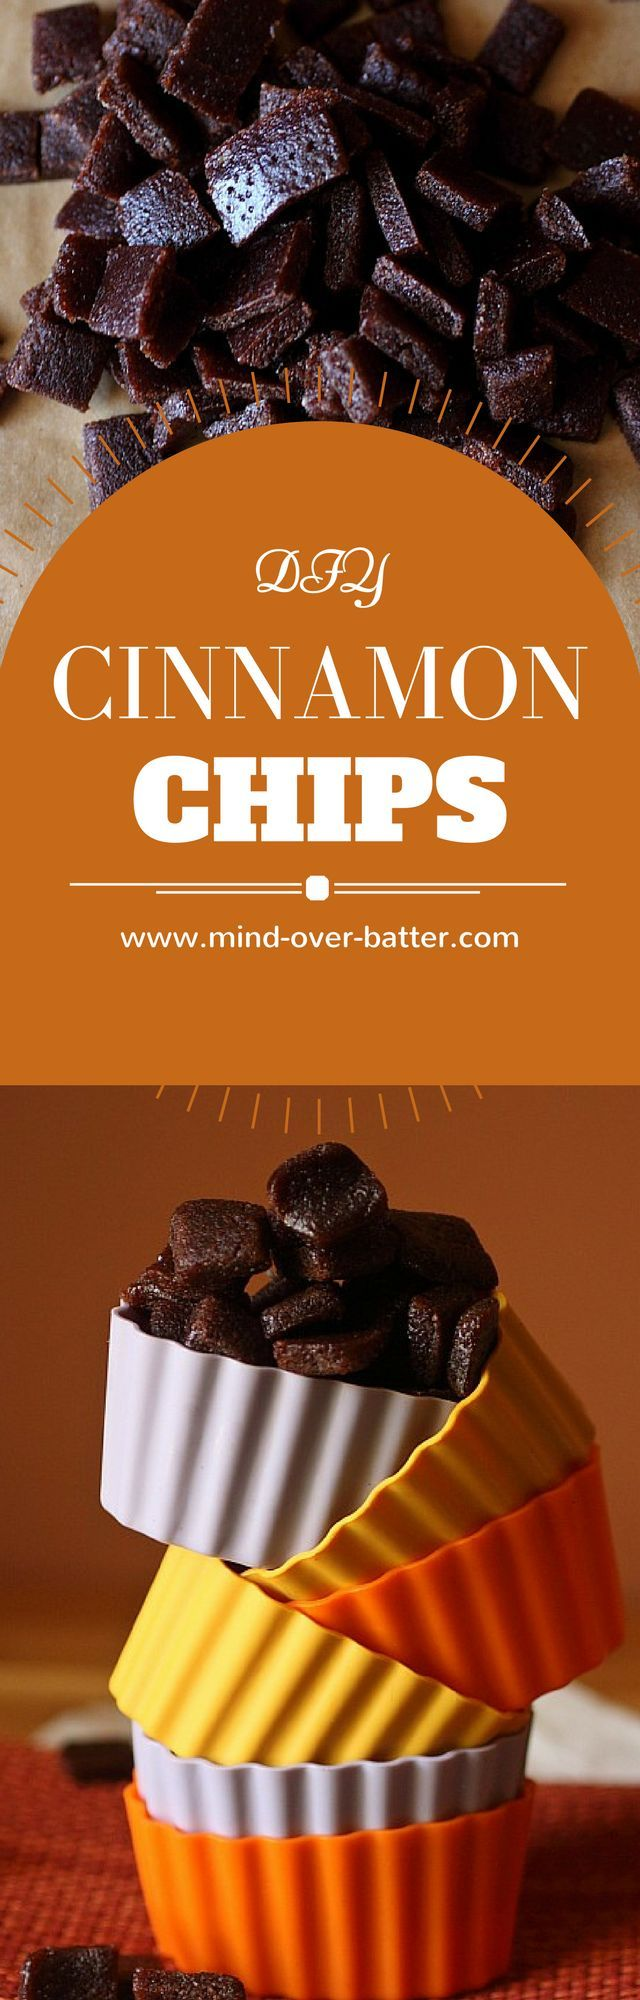 Tired of looking for cinnamon chips in the supermarket and coming up empty? I got you, boo! Make your own Cinnamon Chips! So easy! http://www.mind-over-batter.com